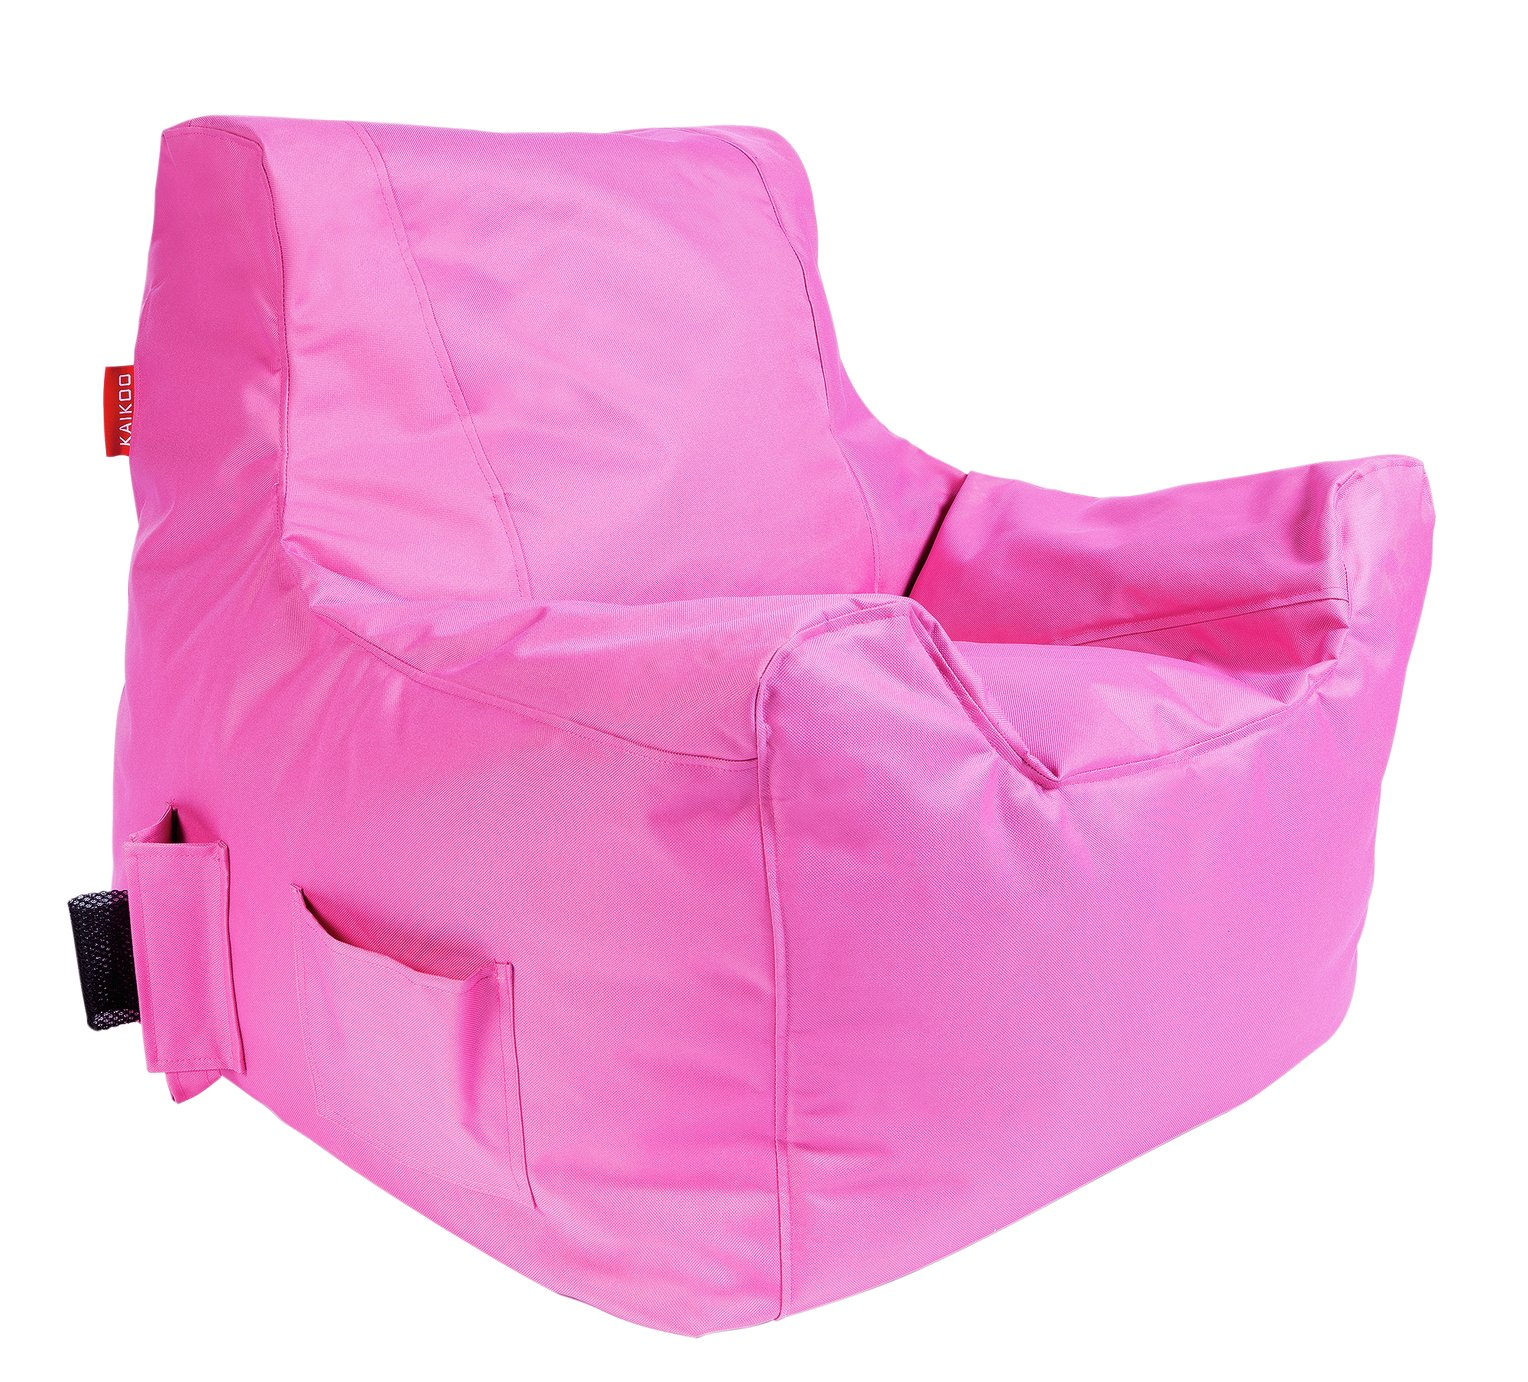 Image of ColourMatch Teenager Beanbag - Pink